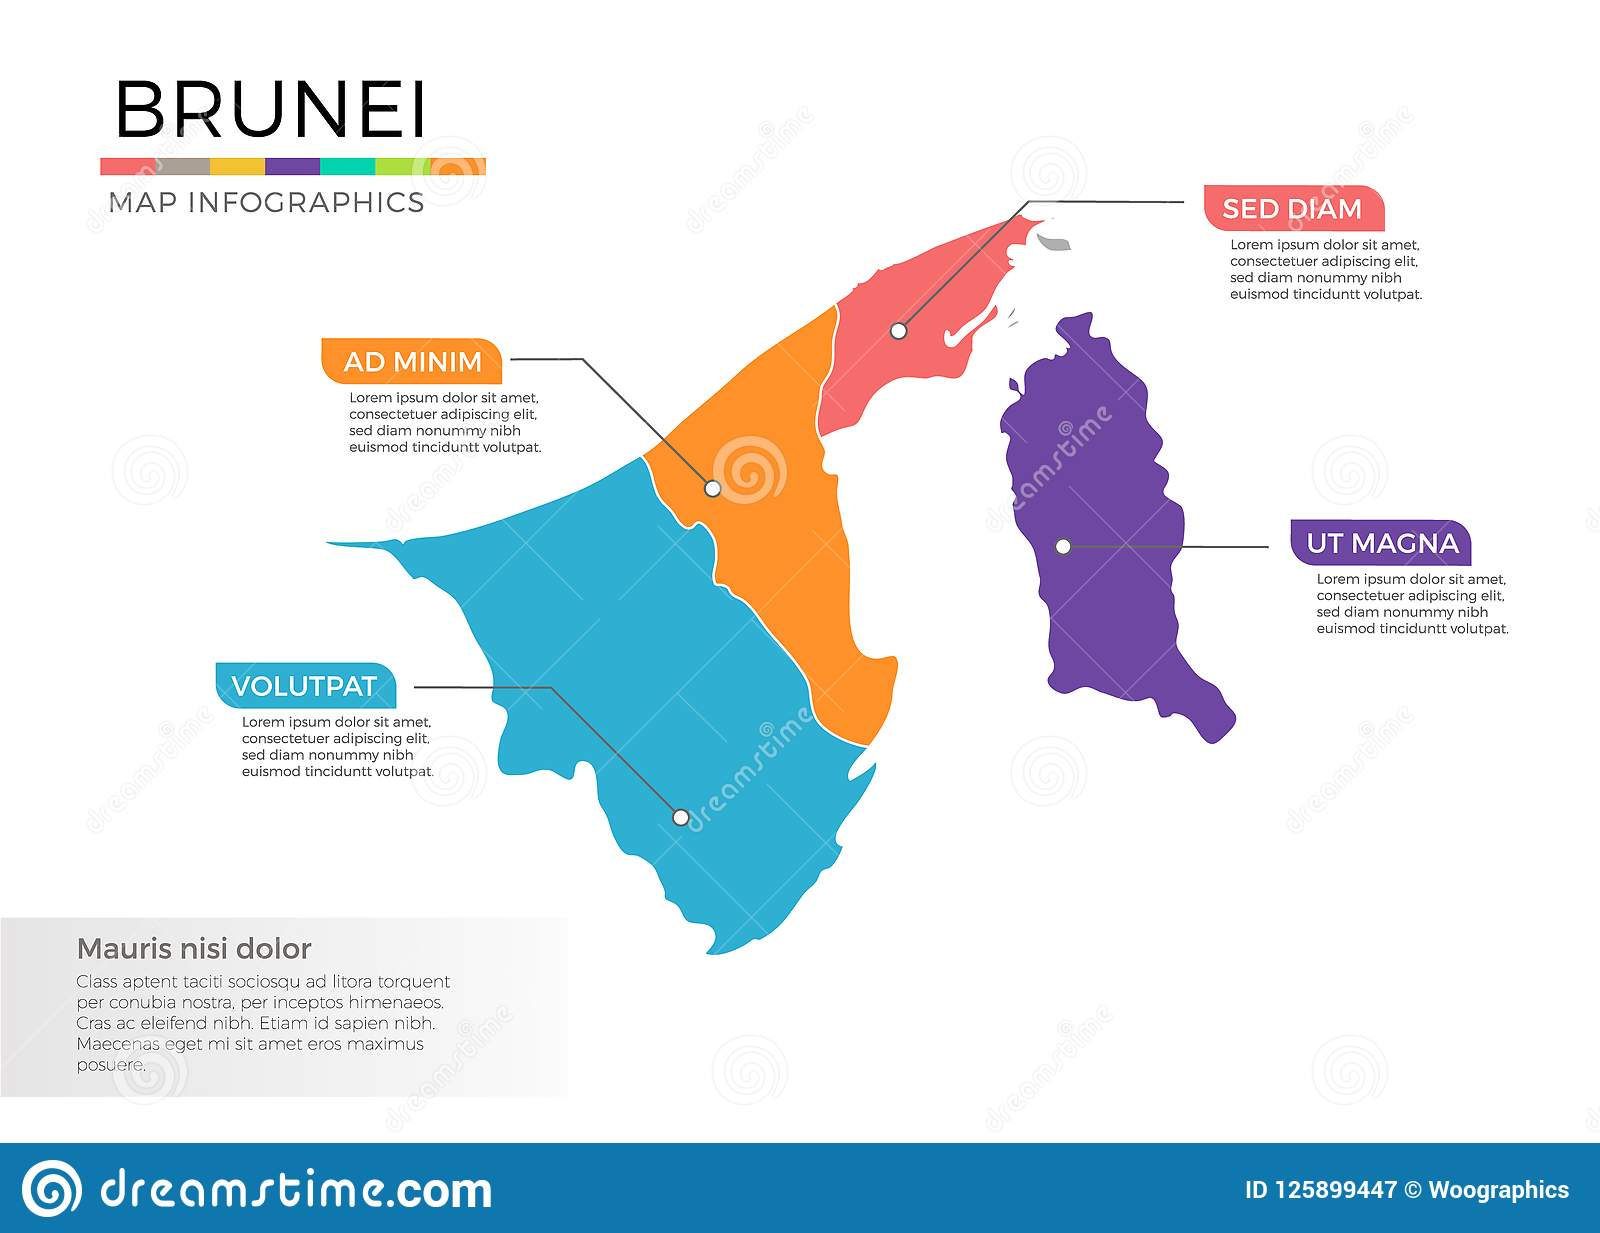 Picture of: Brunei Map Infographics Vector Template With Regions And Pointer Marks Stock Vector Illustration Of Infochart Icon 125899447